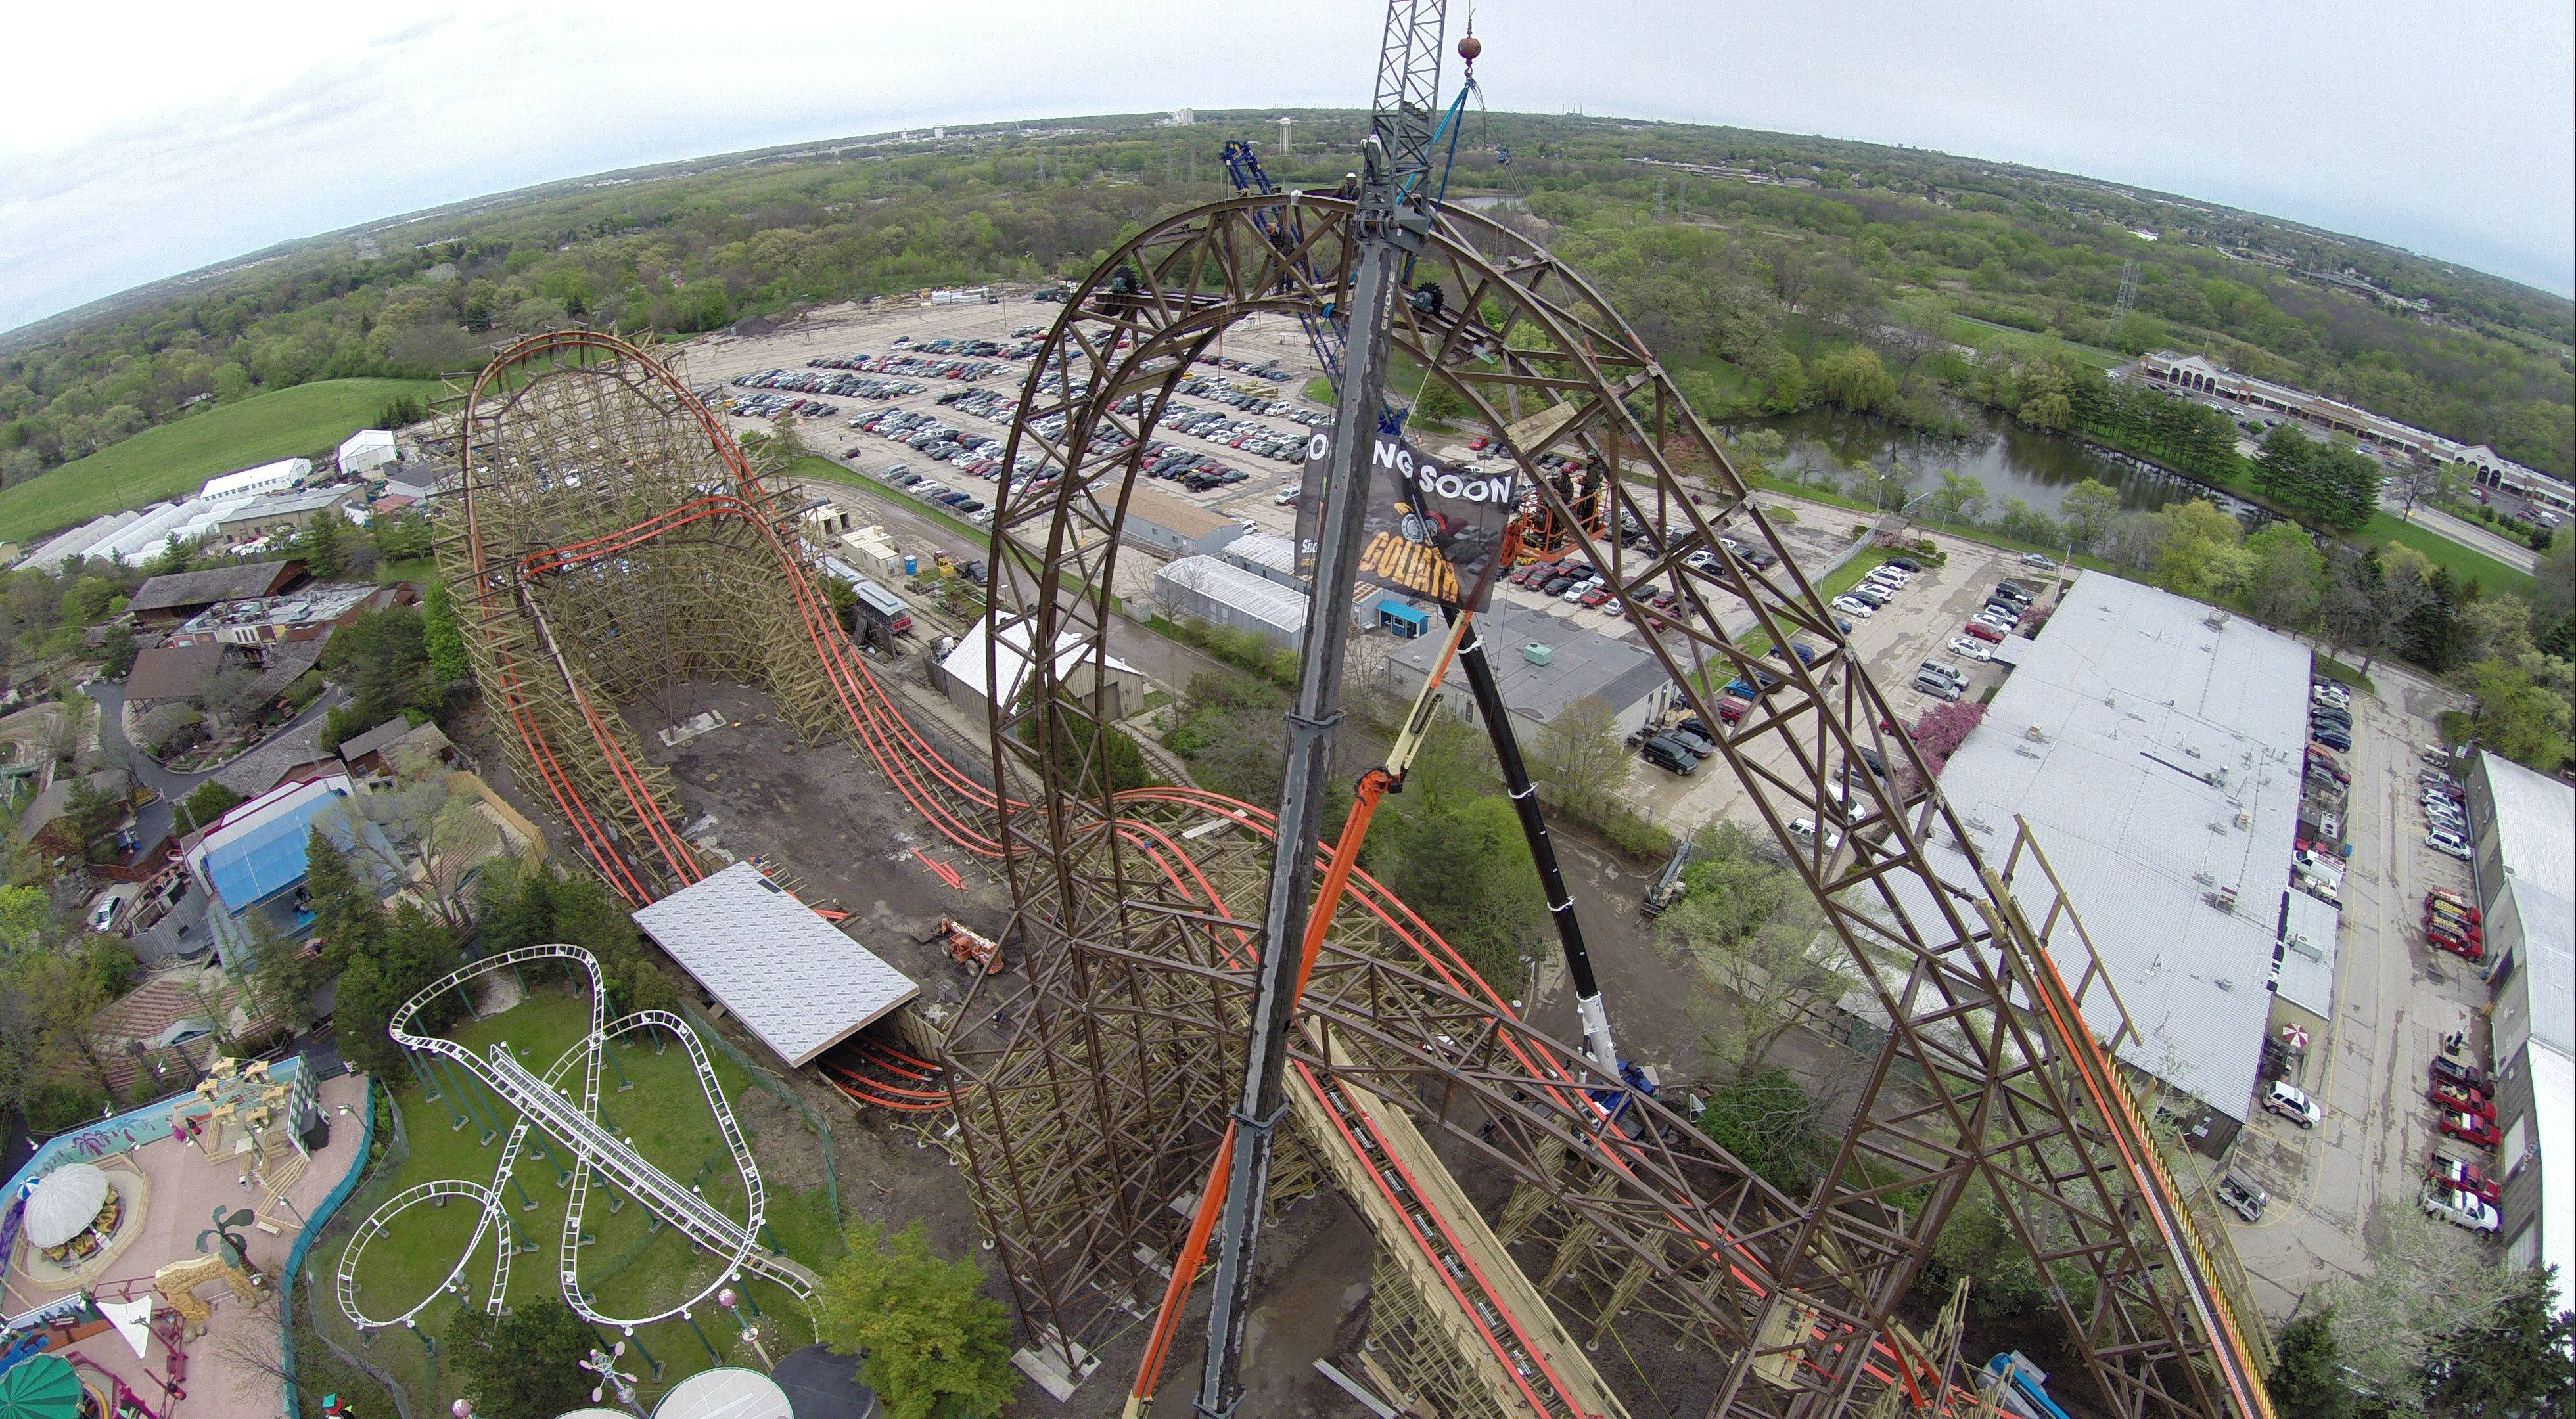 Goliath — the world's tallest, fastest and steepest wooden roller coaster — will open May 31 at Six Flags Great America in Gurnee.